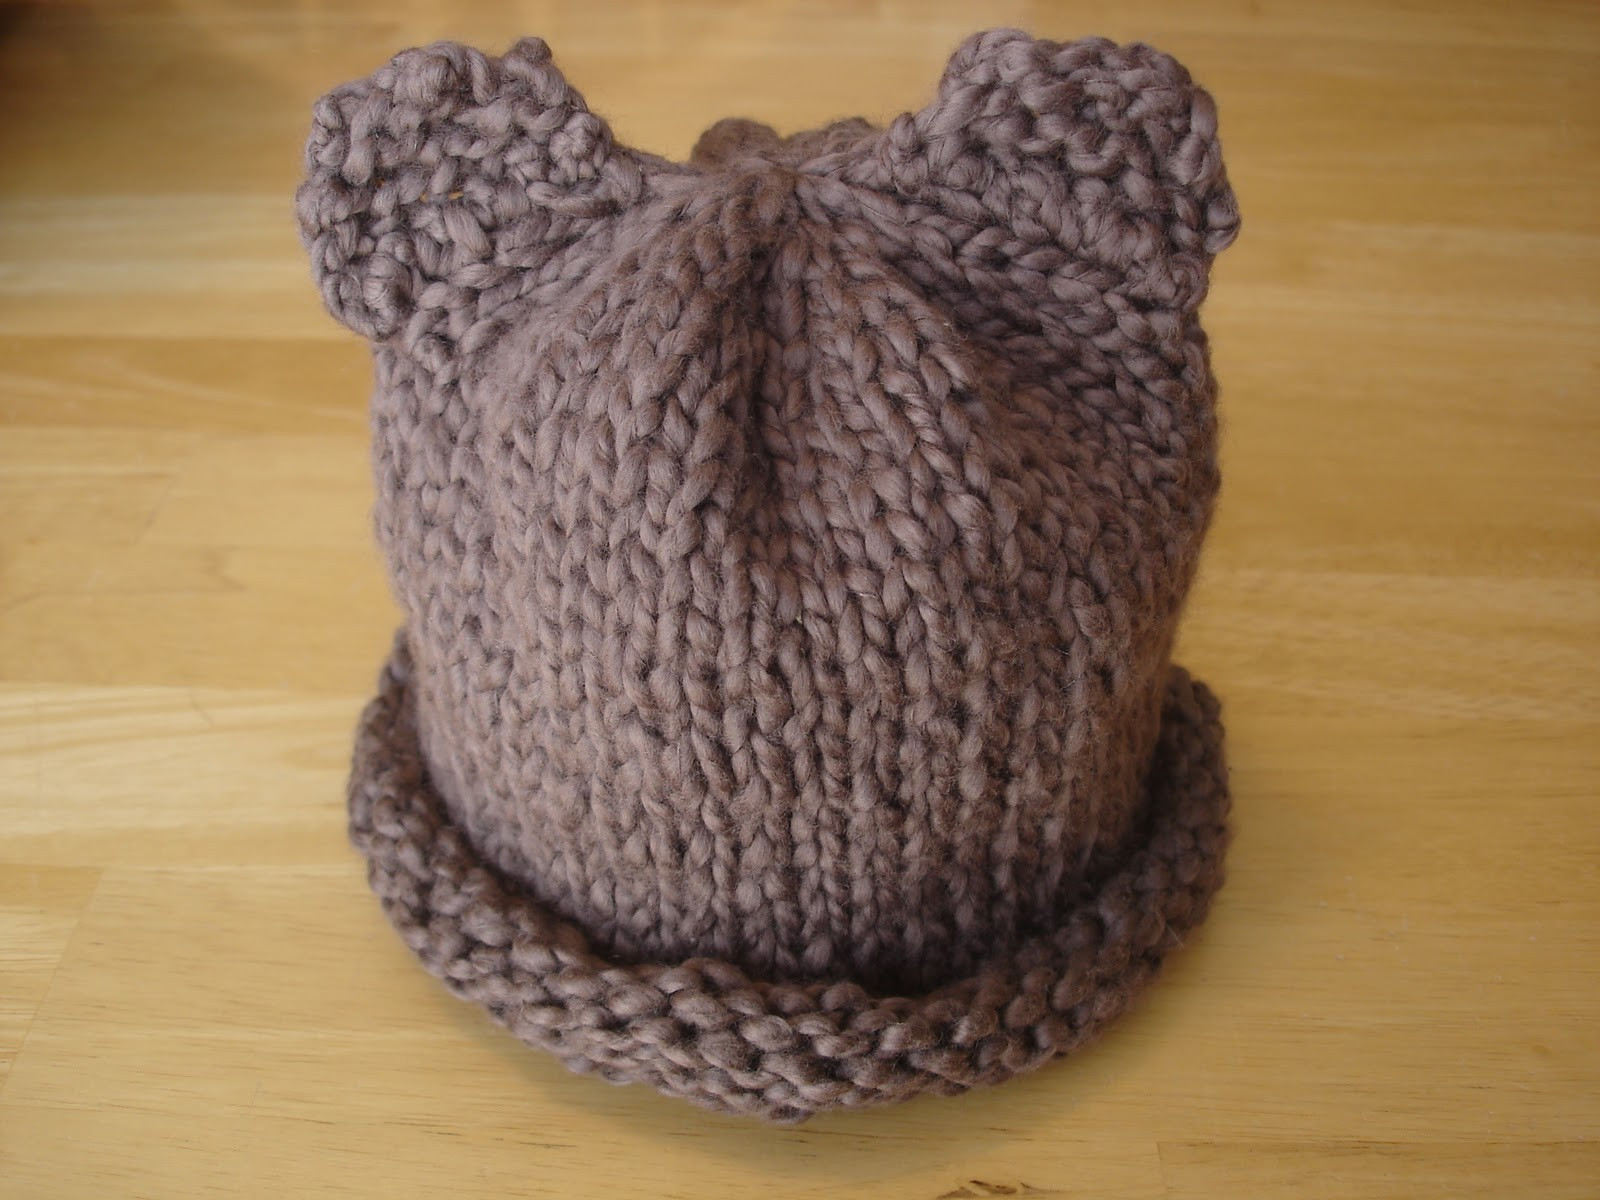 Free Knitting Patterns for Baby Hats Luxury Fiber Flux Free Knitting Pattern Baby Bear Hat for Of Perfect 44 Models Free Knitting Patterns for Baby Hats